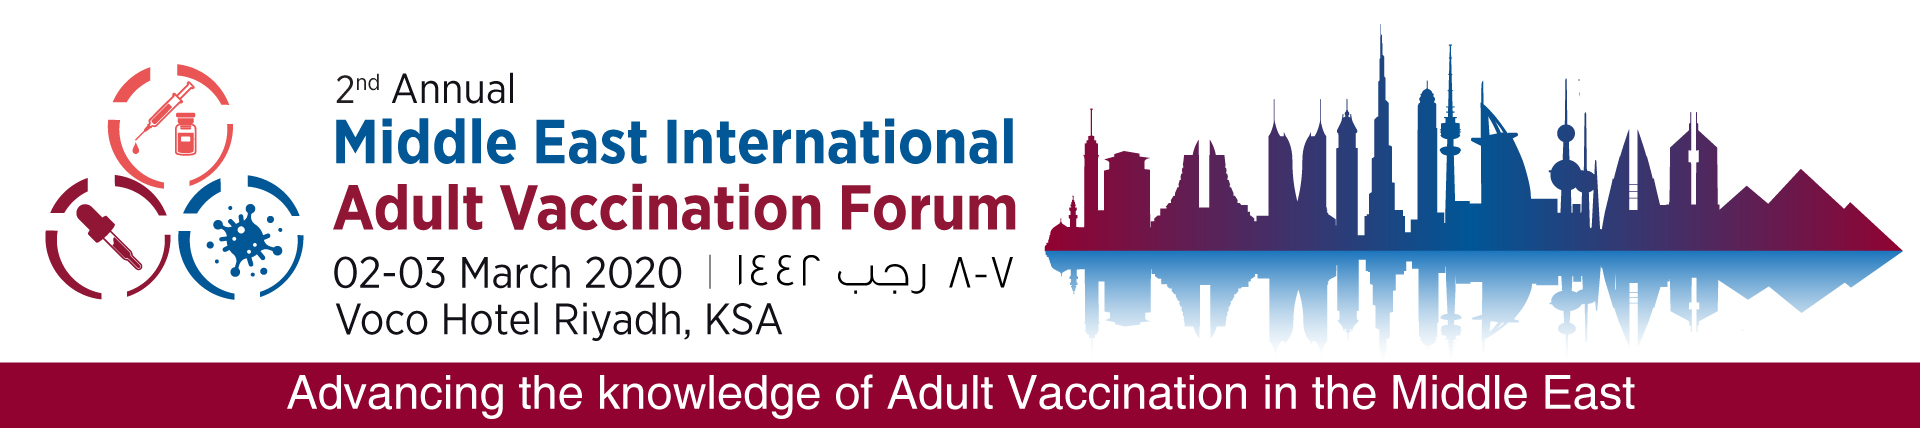 The 2nd Middle East International Adult Vaccination Forum